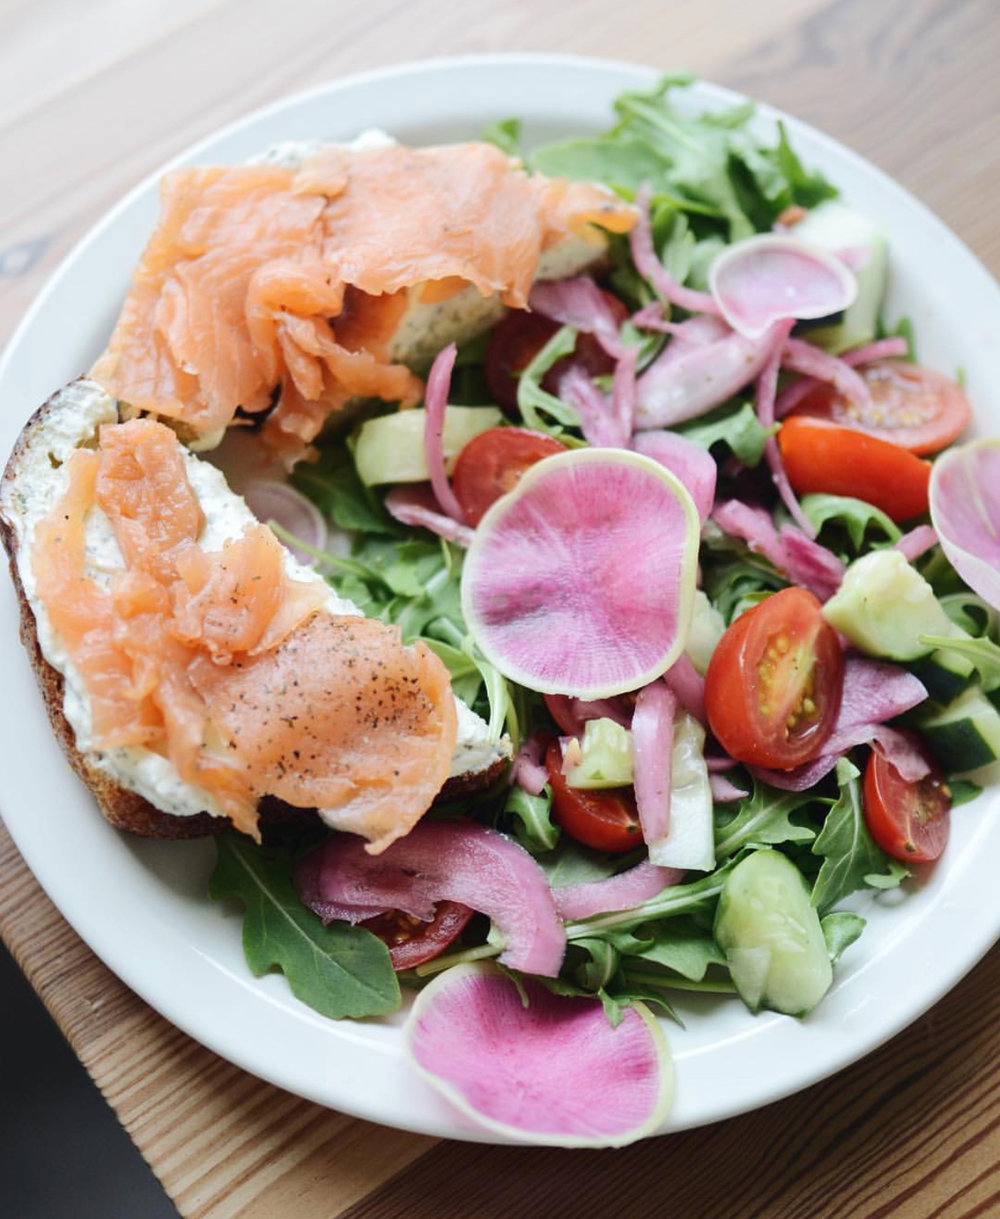 Lox Plate from the Daily Beet